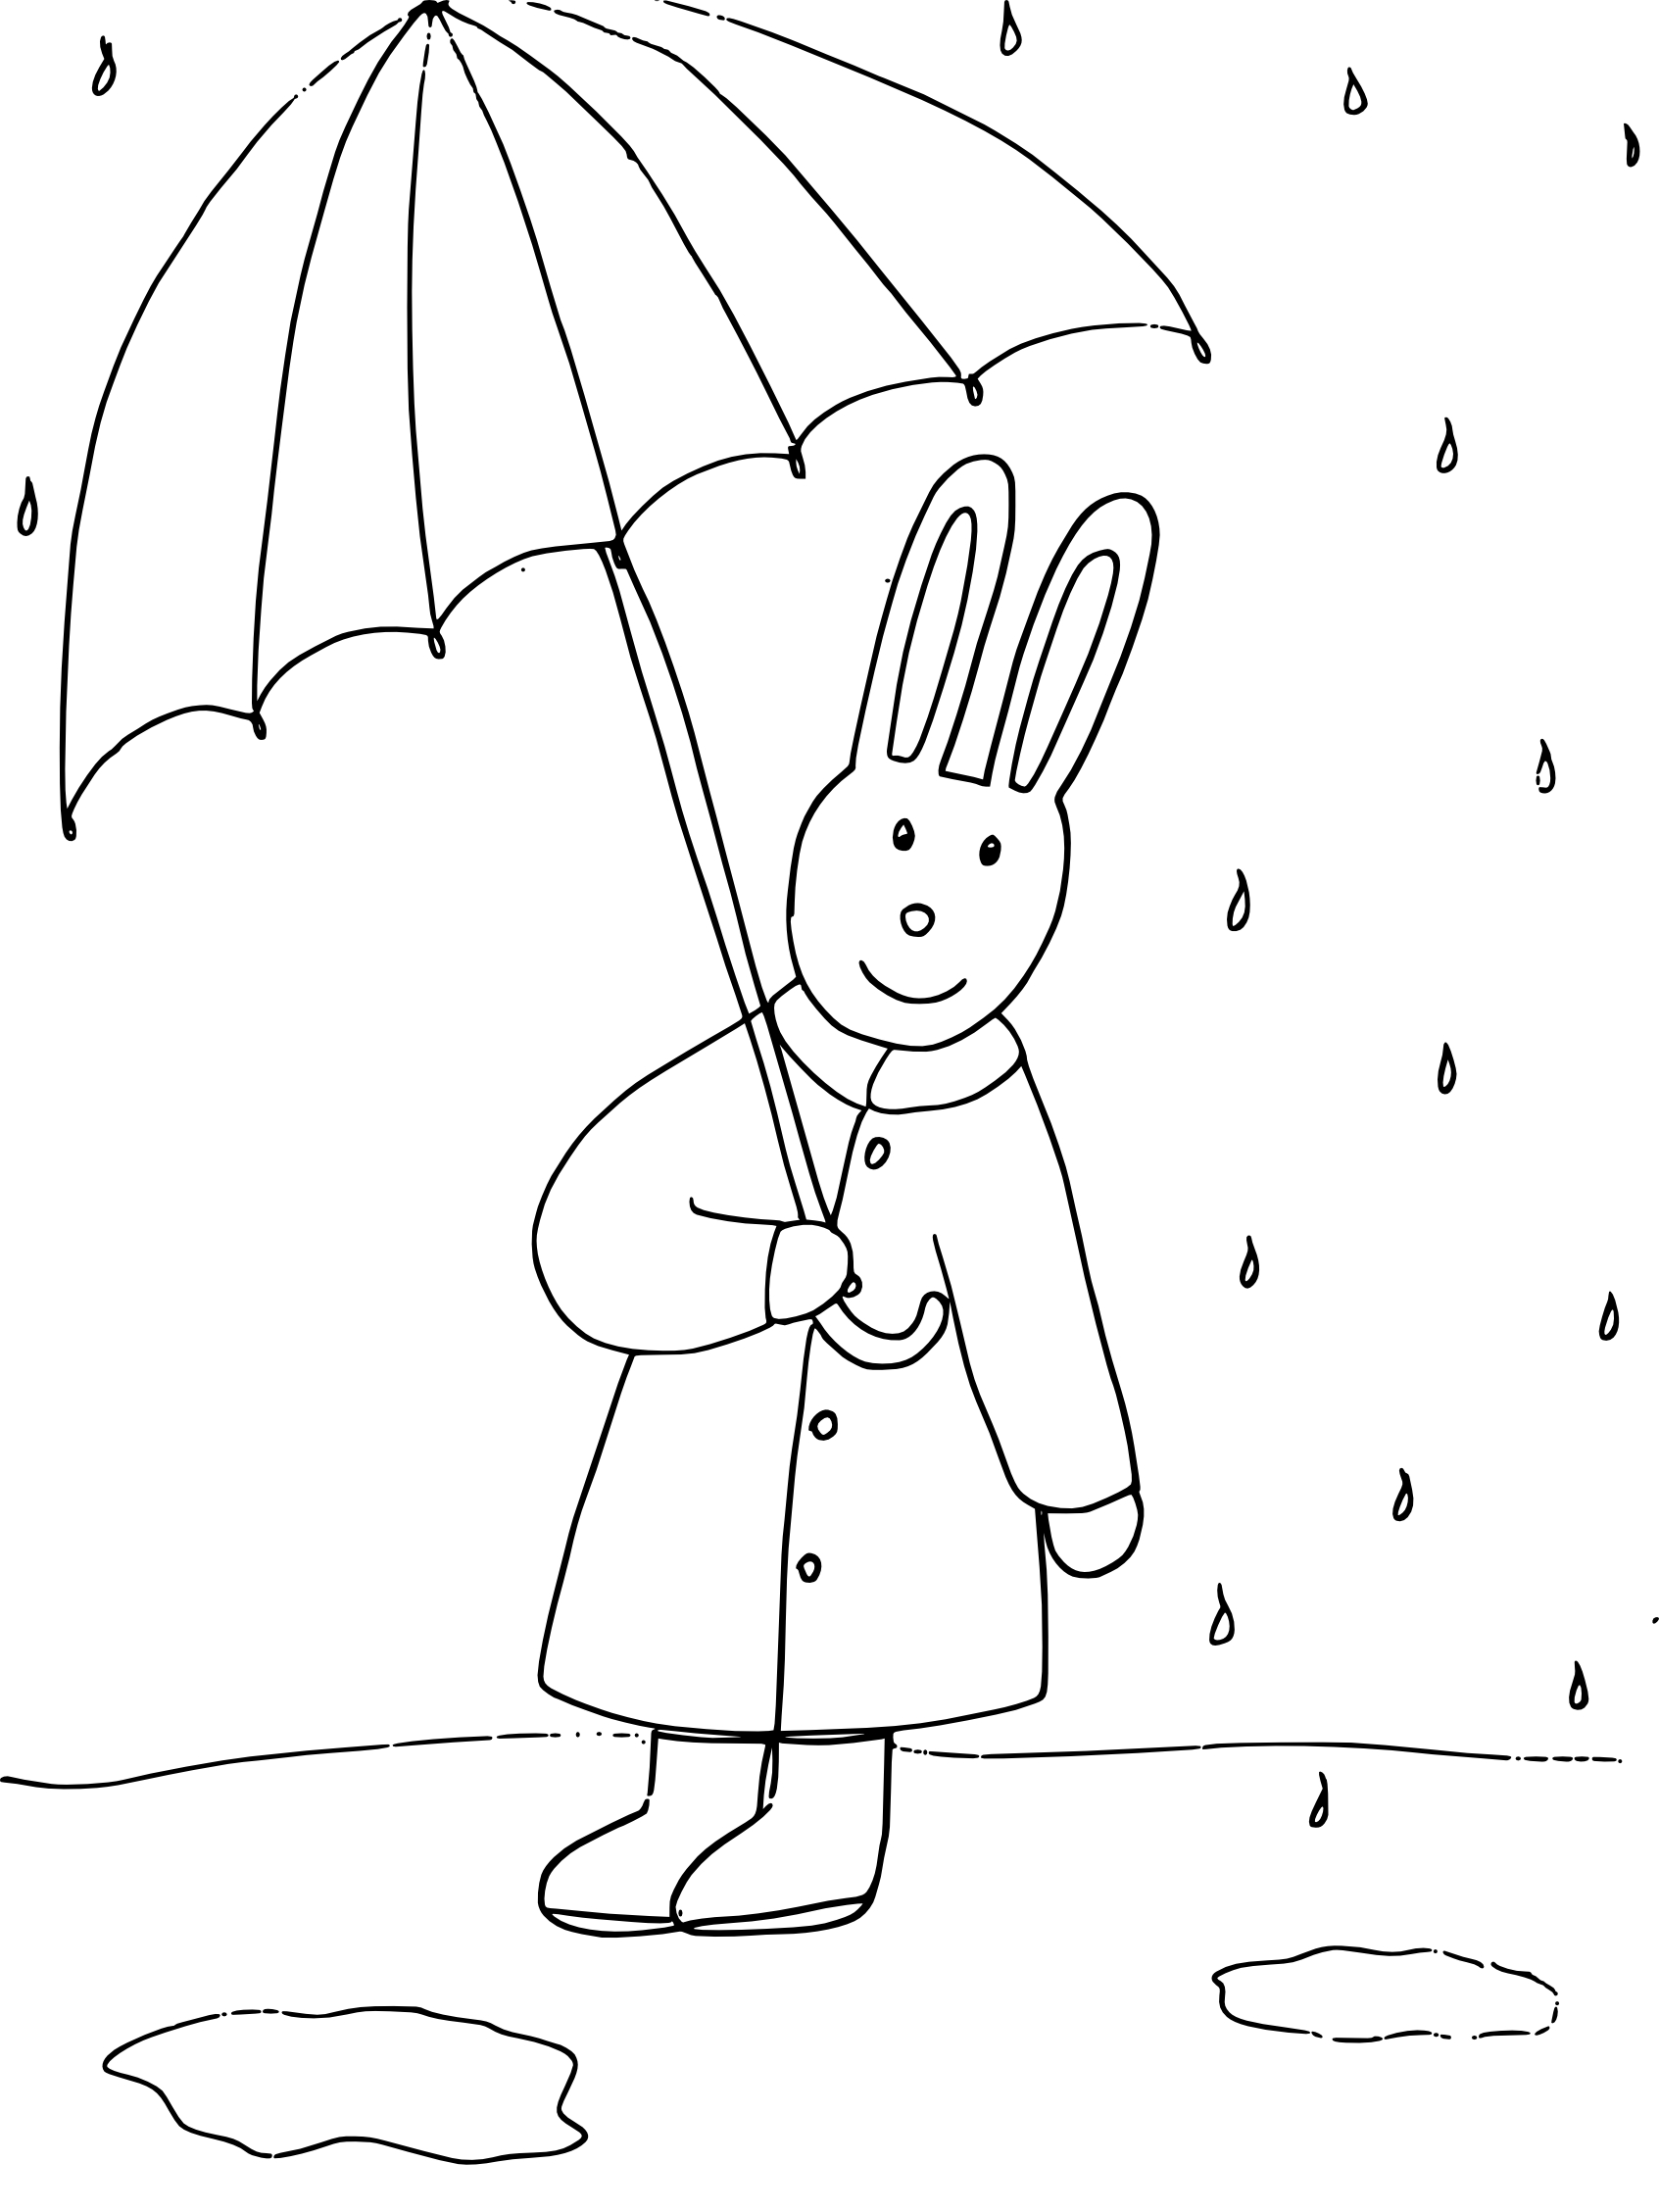 Dessin lapin qui saute hd images wallpaper for - Coloriages lapin ...